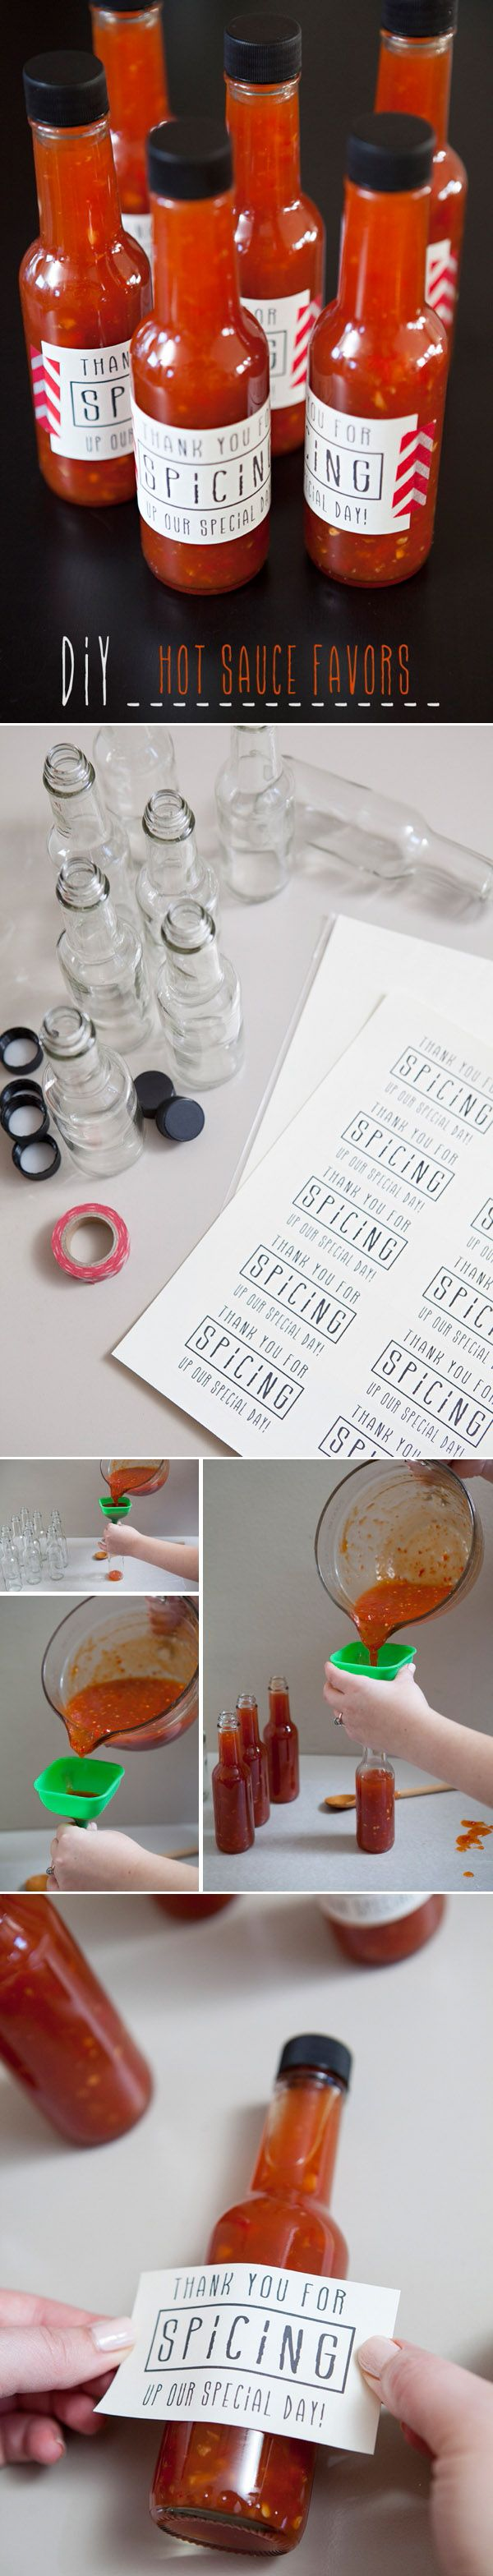 Top 5 DIY Wedding Favors Your Guests Will Love | Hot sauce wedding ...